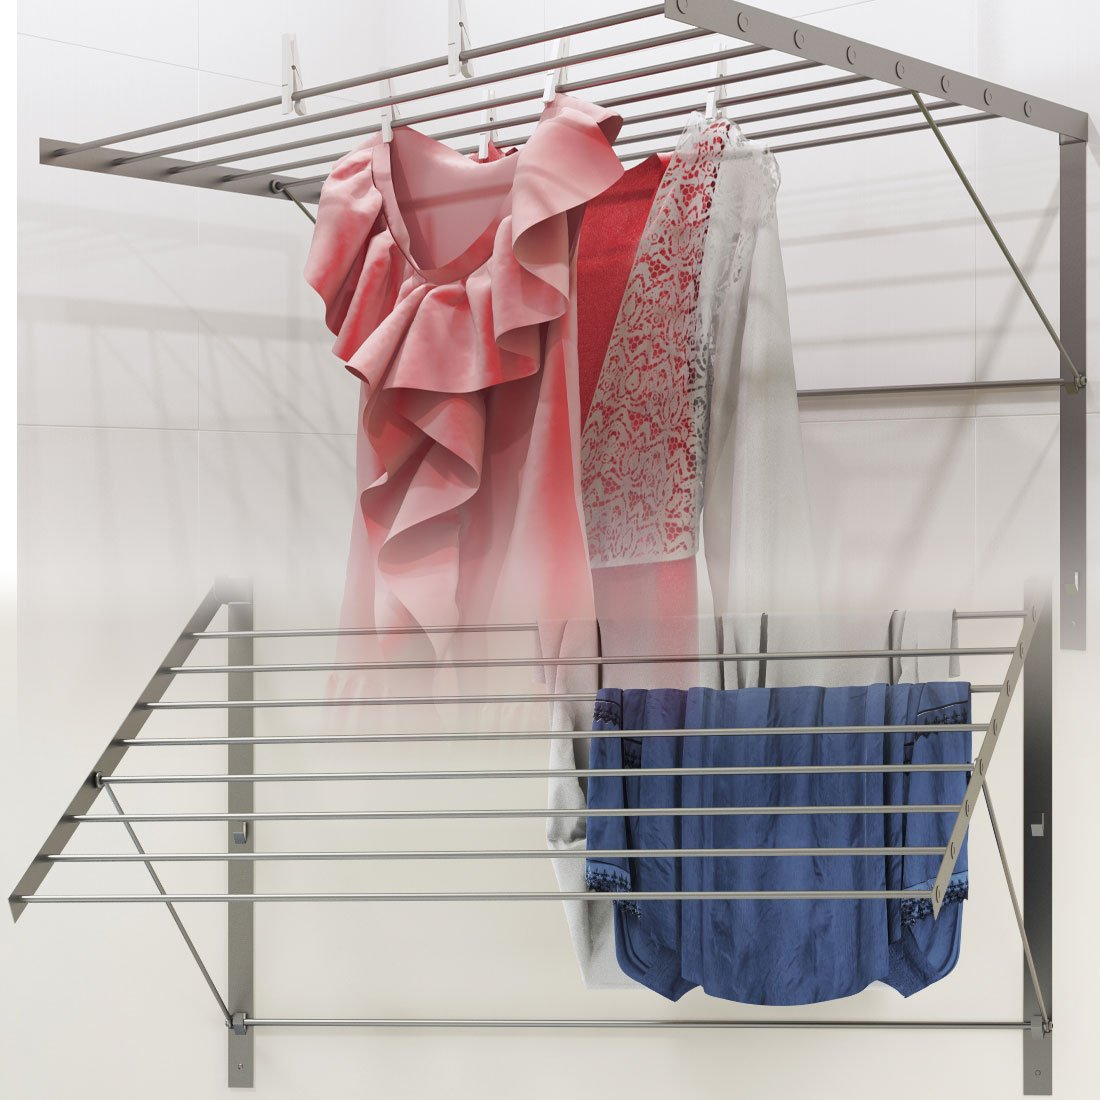 home depot rack the clothes p basics drying racks grey